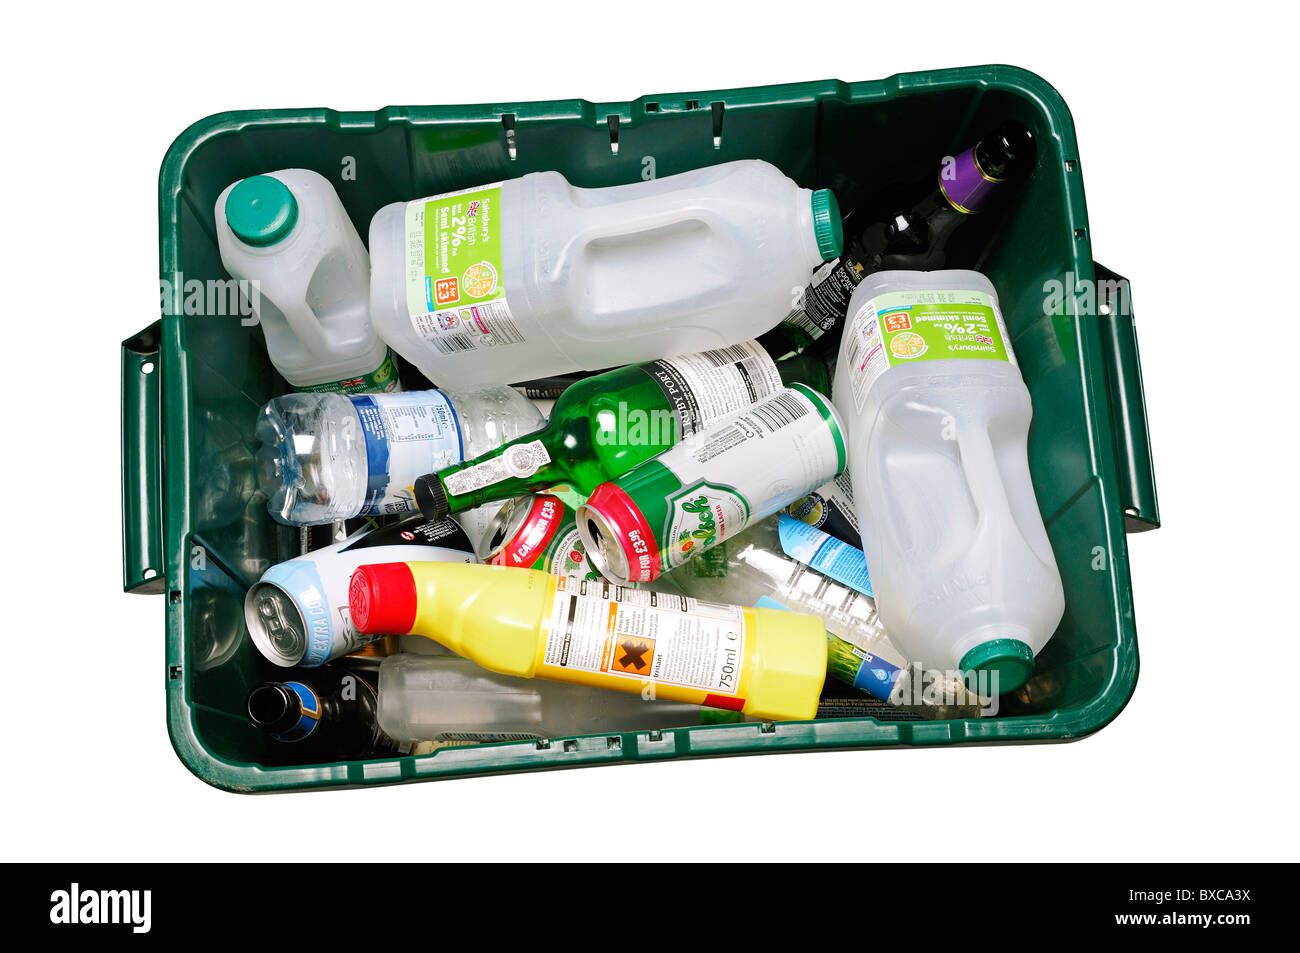 Recycling Container, UK. High Angle, Cut Out. - Stock Image